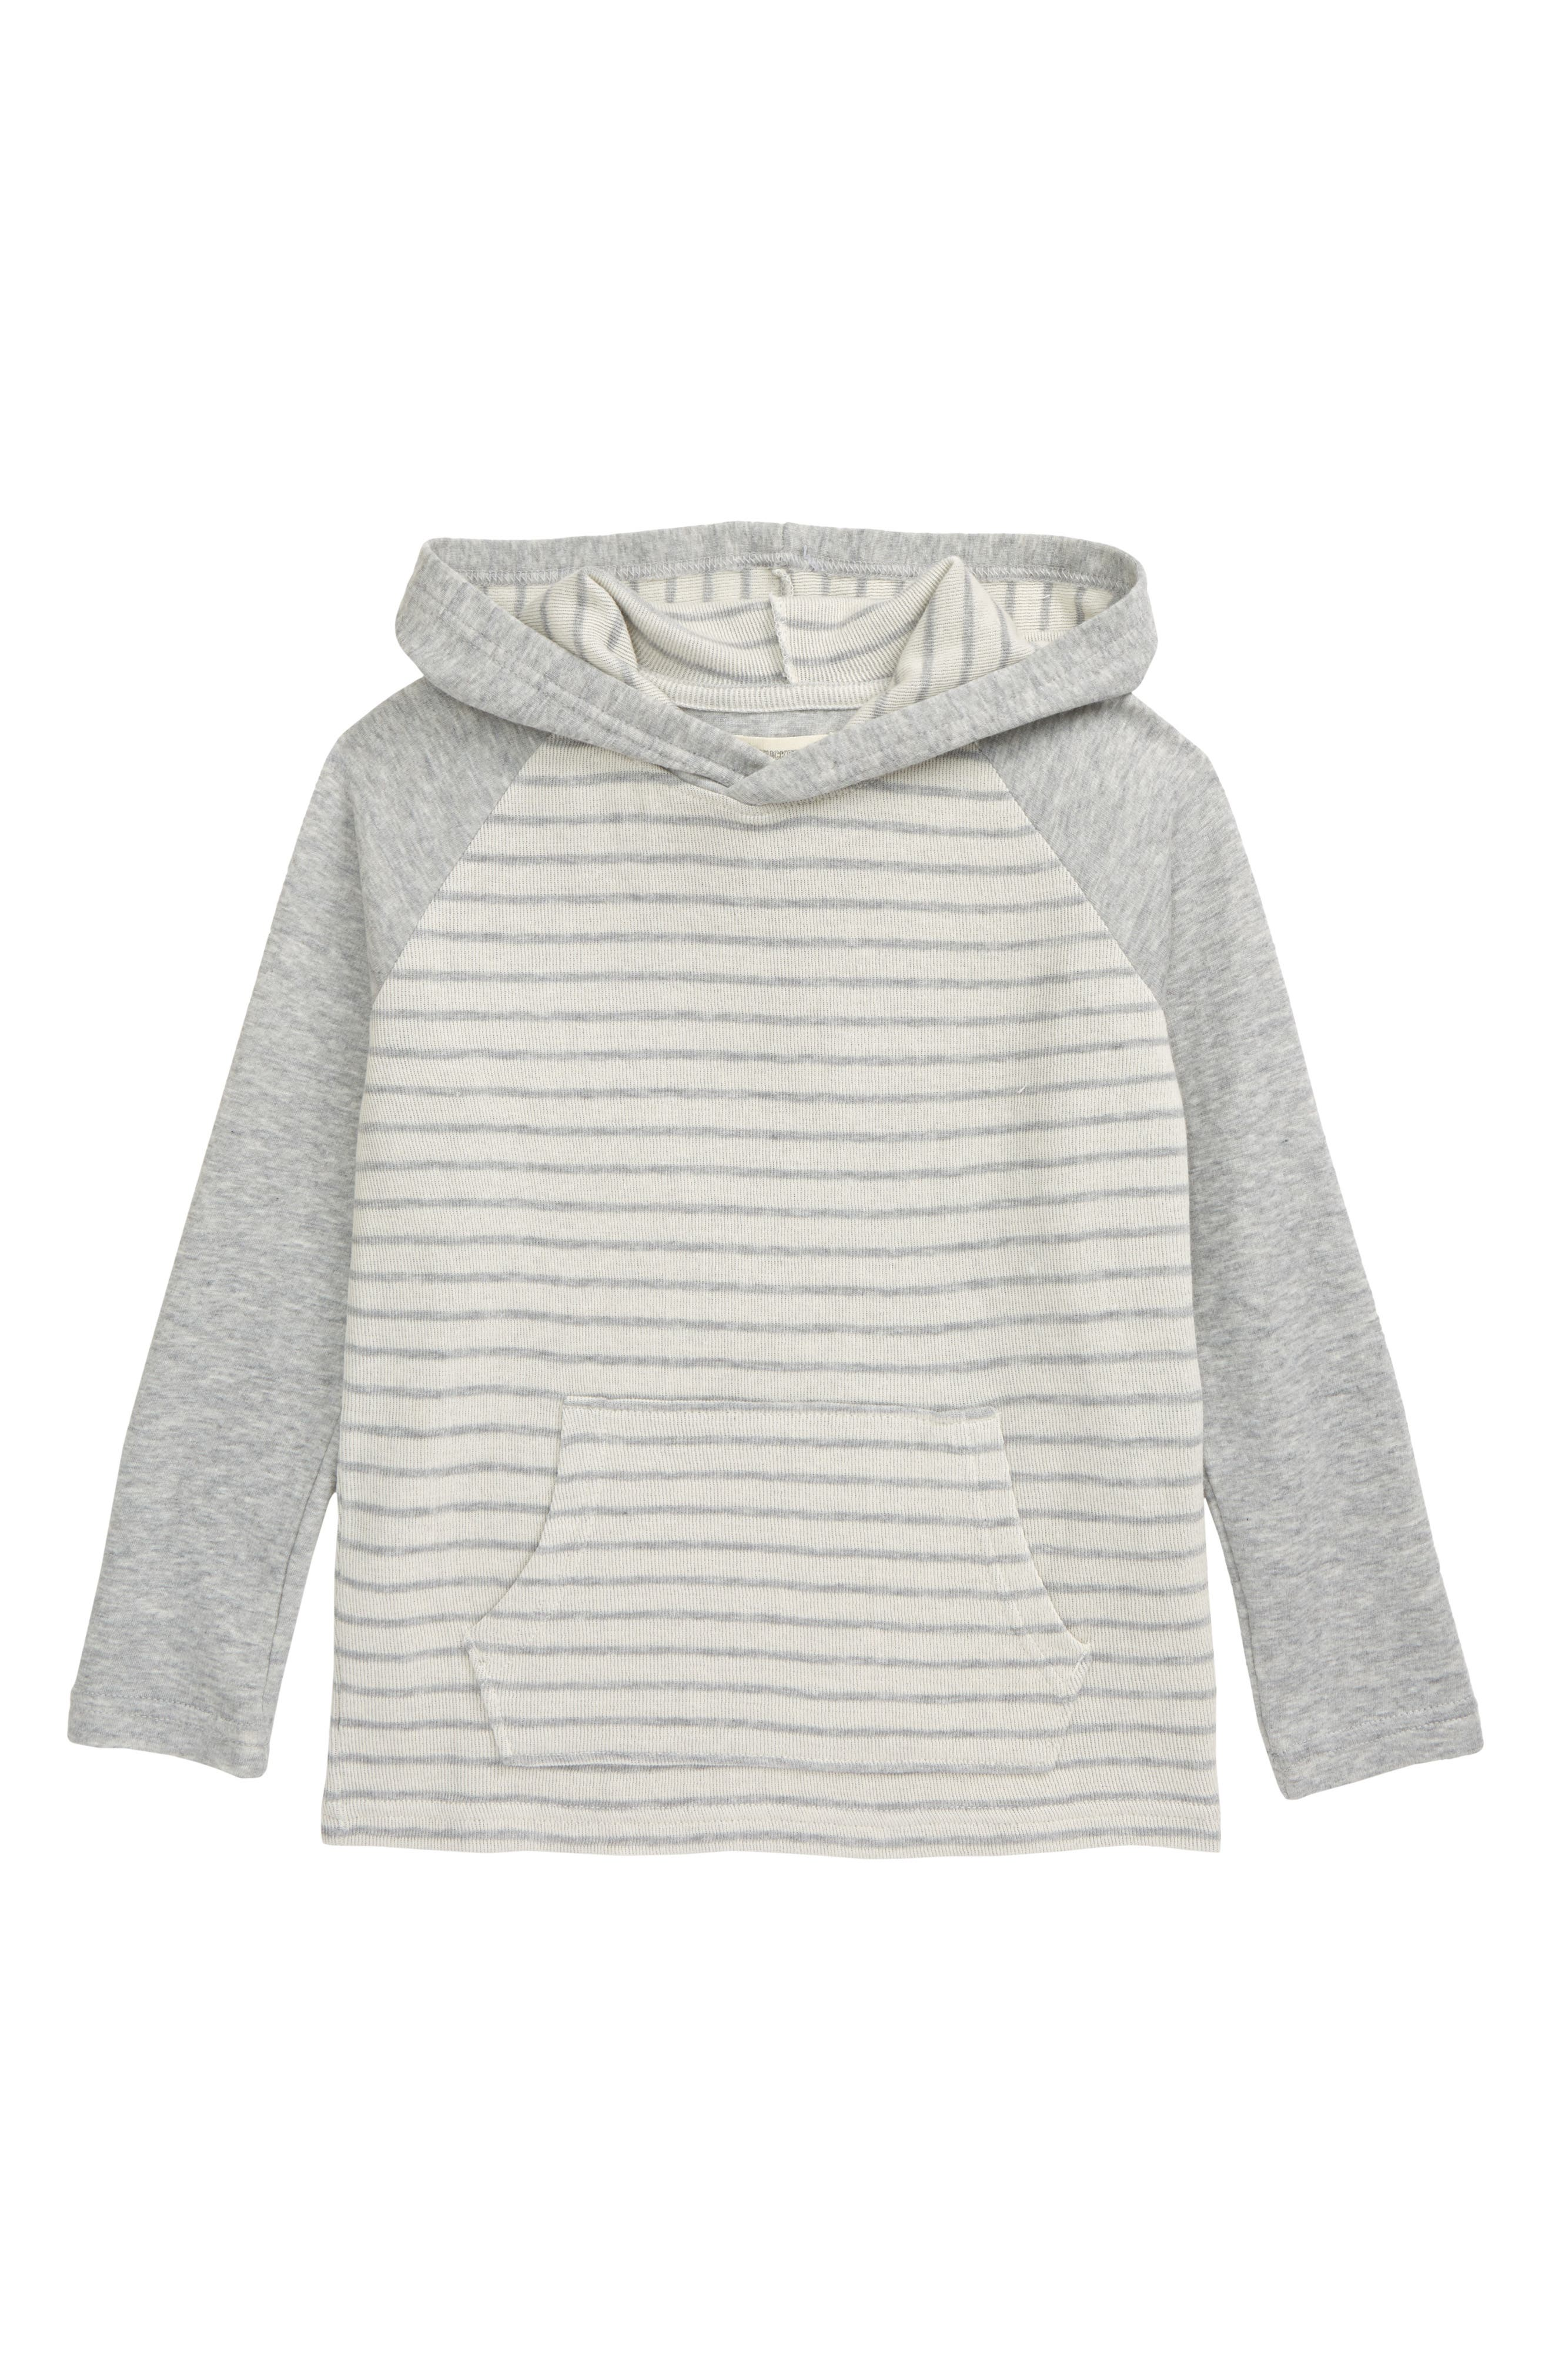 Contrast raglan sleeves underscore the sporty style of a striped hoodie that makes a layer-ready casual favorite. Style Name: Tucker + Tate Stripe Hoodie (Toddler & Little Boy). Style Number: 6017060. Available in stores.